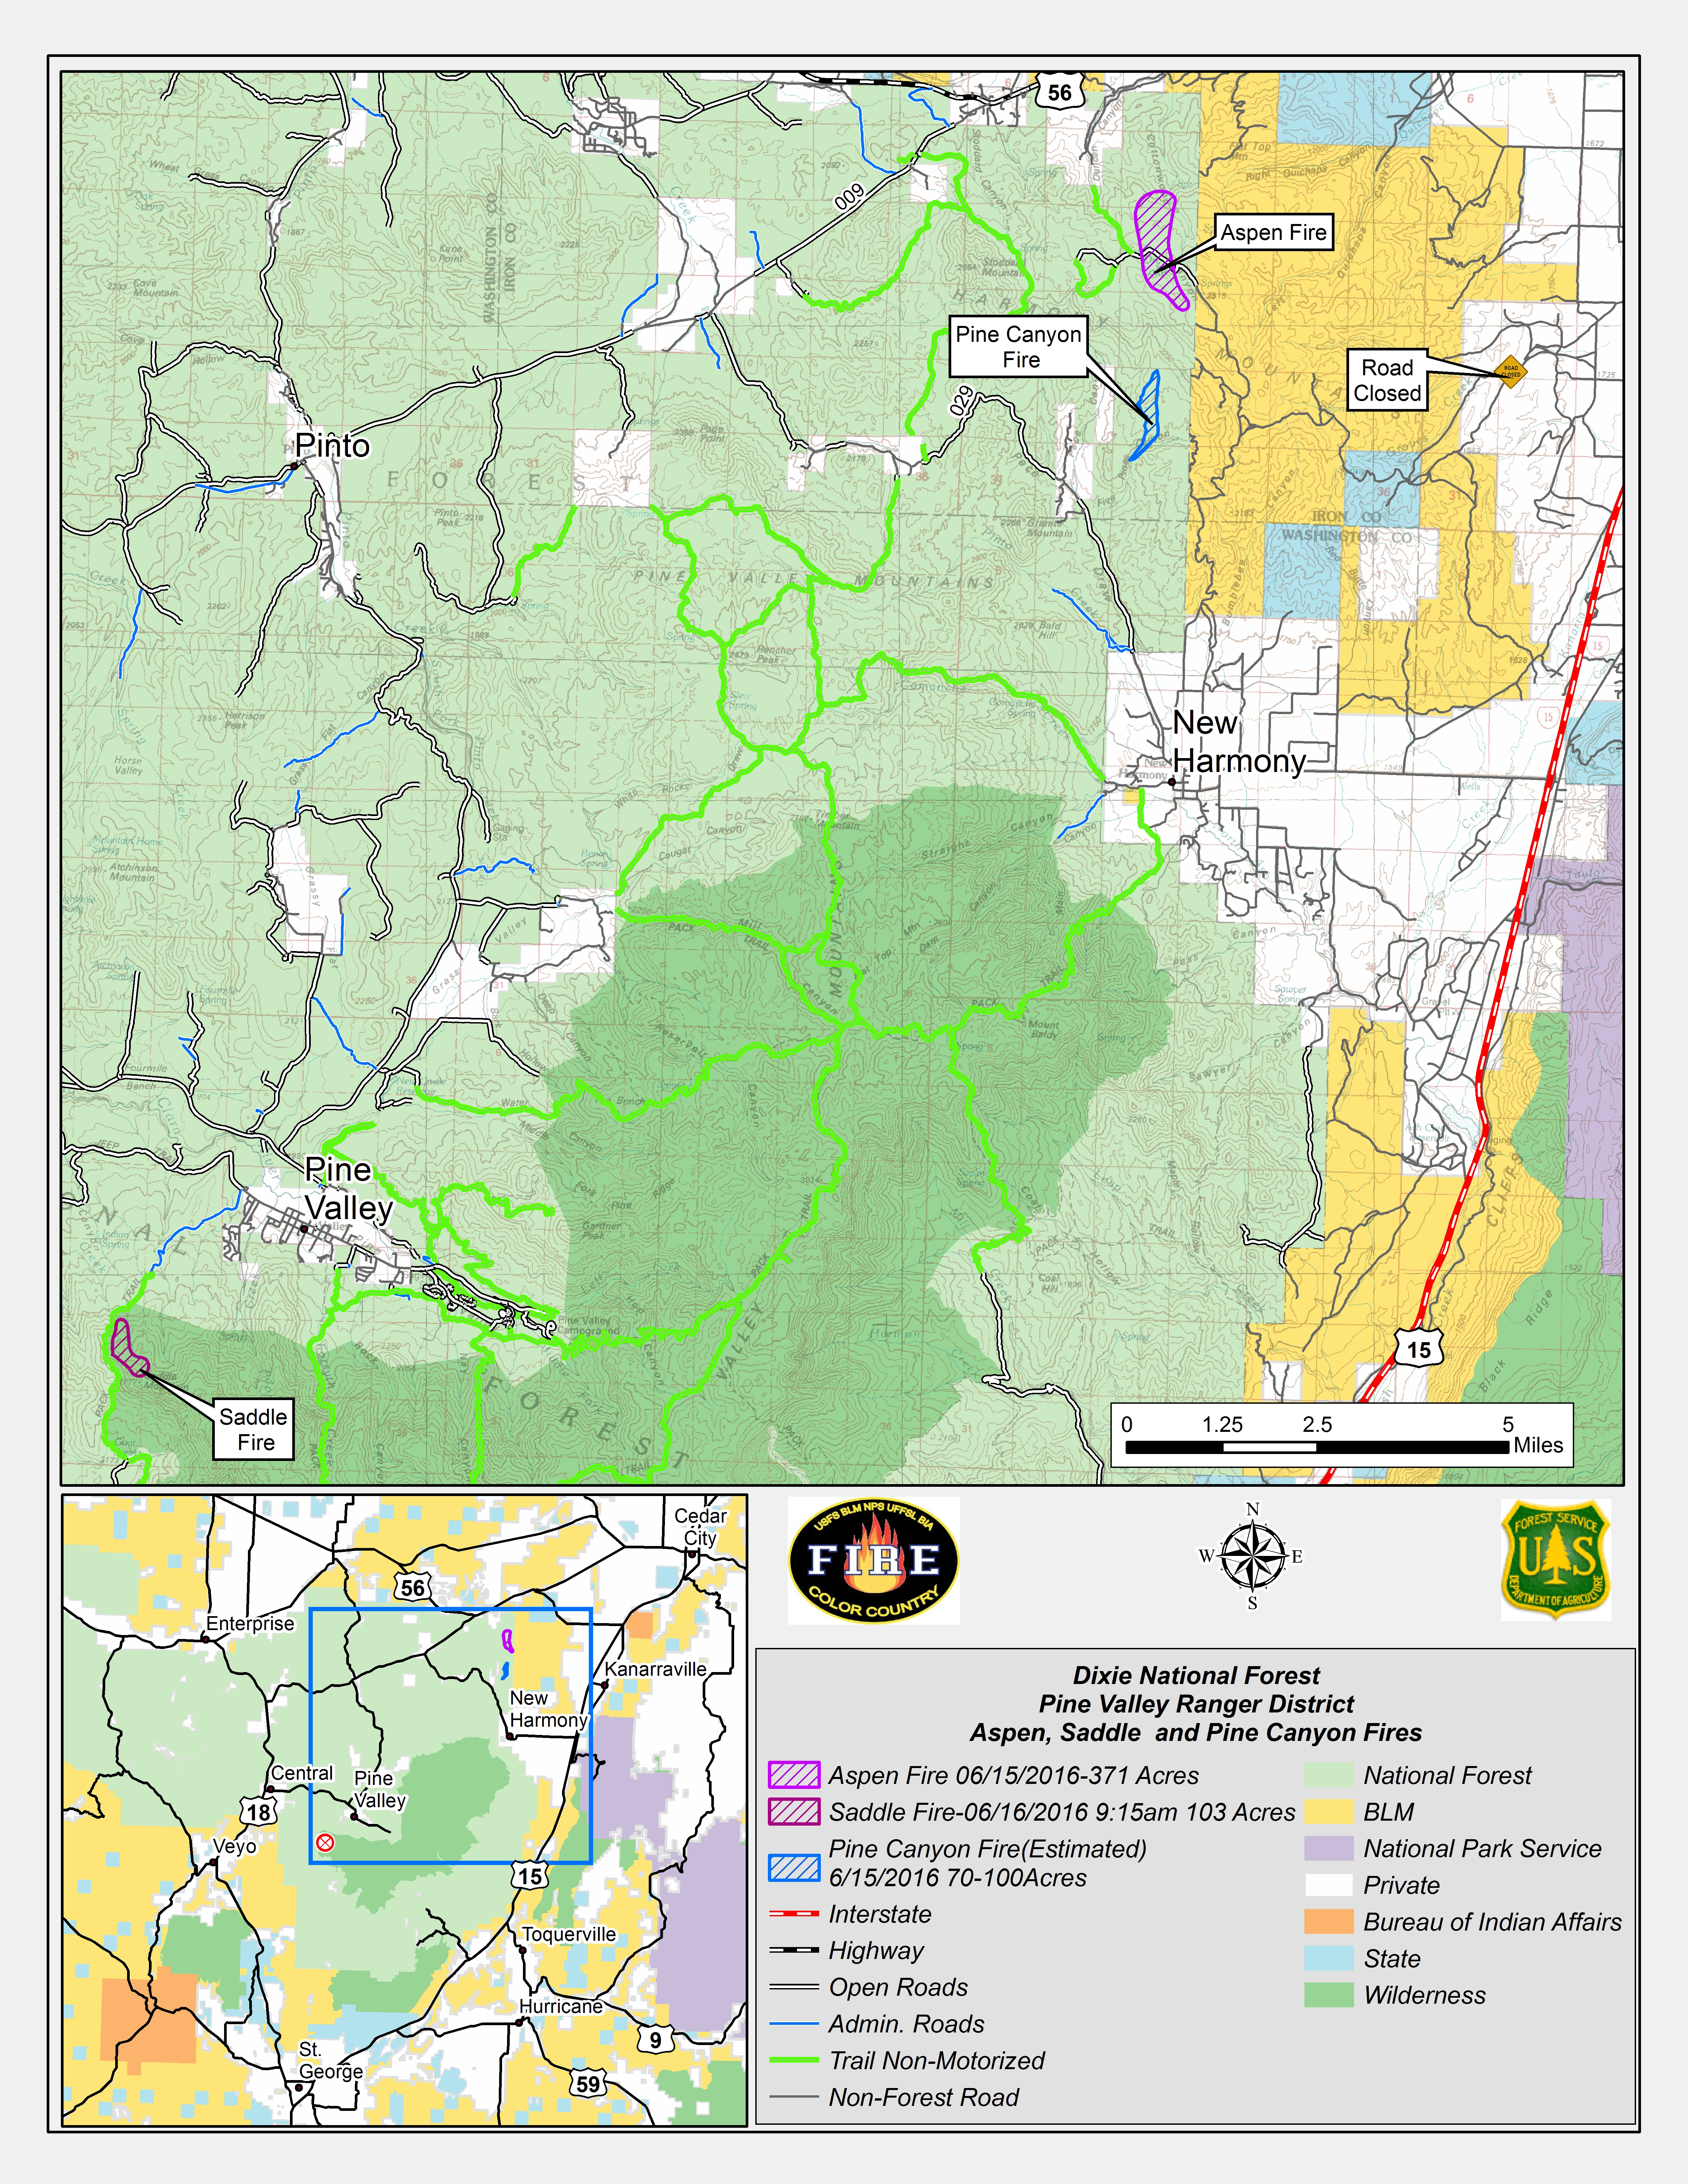 Map issued Thursday indicating three lightning-caused fires, the Aspen Fire, the Pine Canyon Fire and the Saddle Fire, all burning in Dixie National Forest, June 16, 2016 | Map courtesy of Dixie National Forest, St. George News | Click on map to enlarge